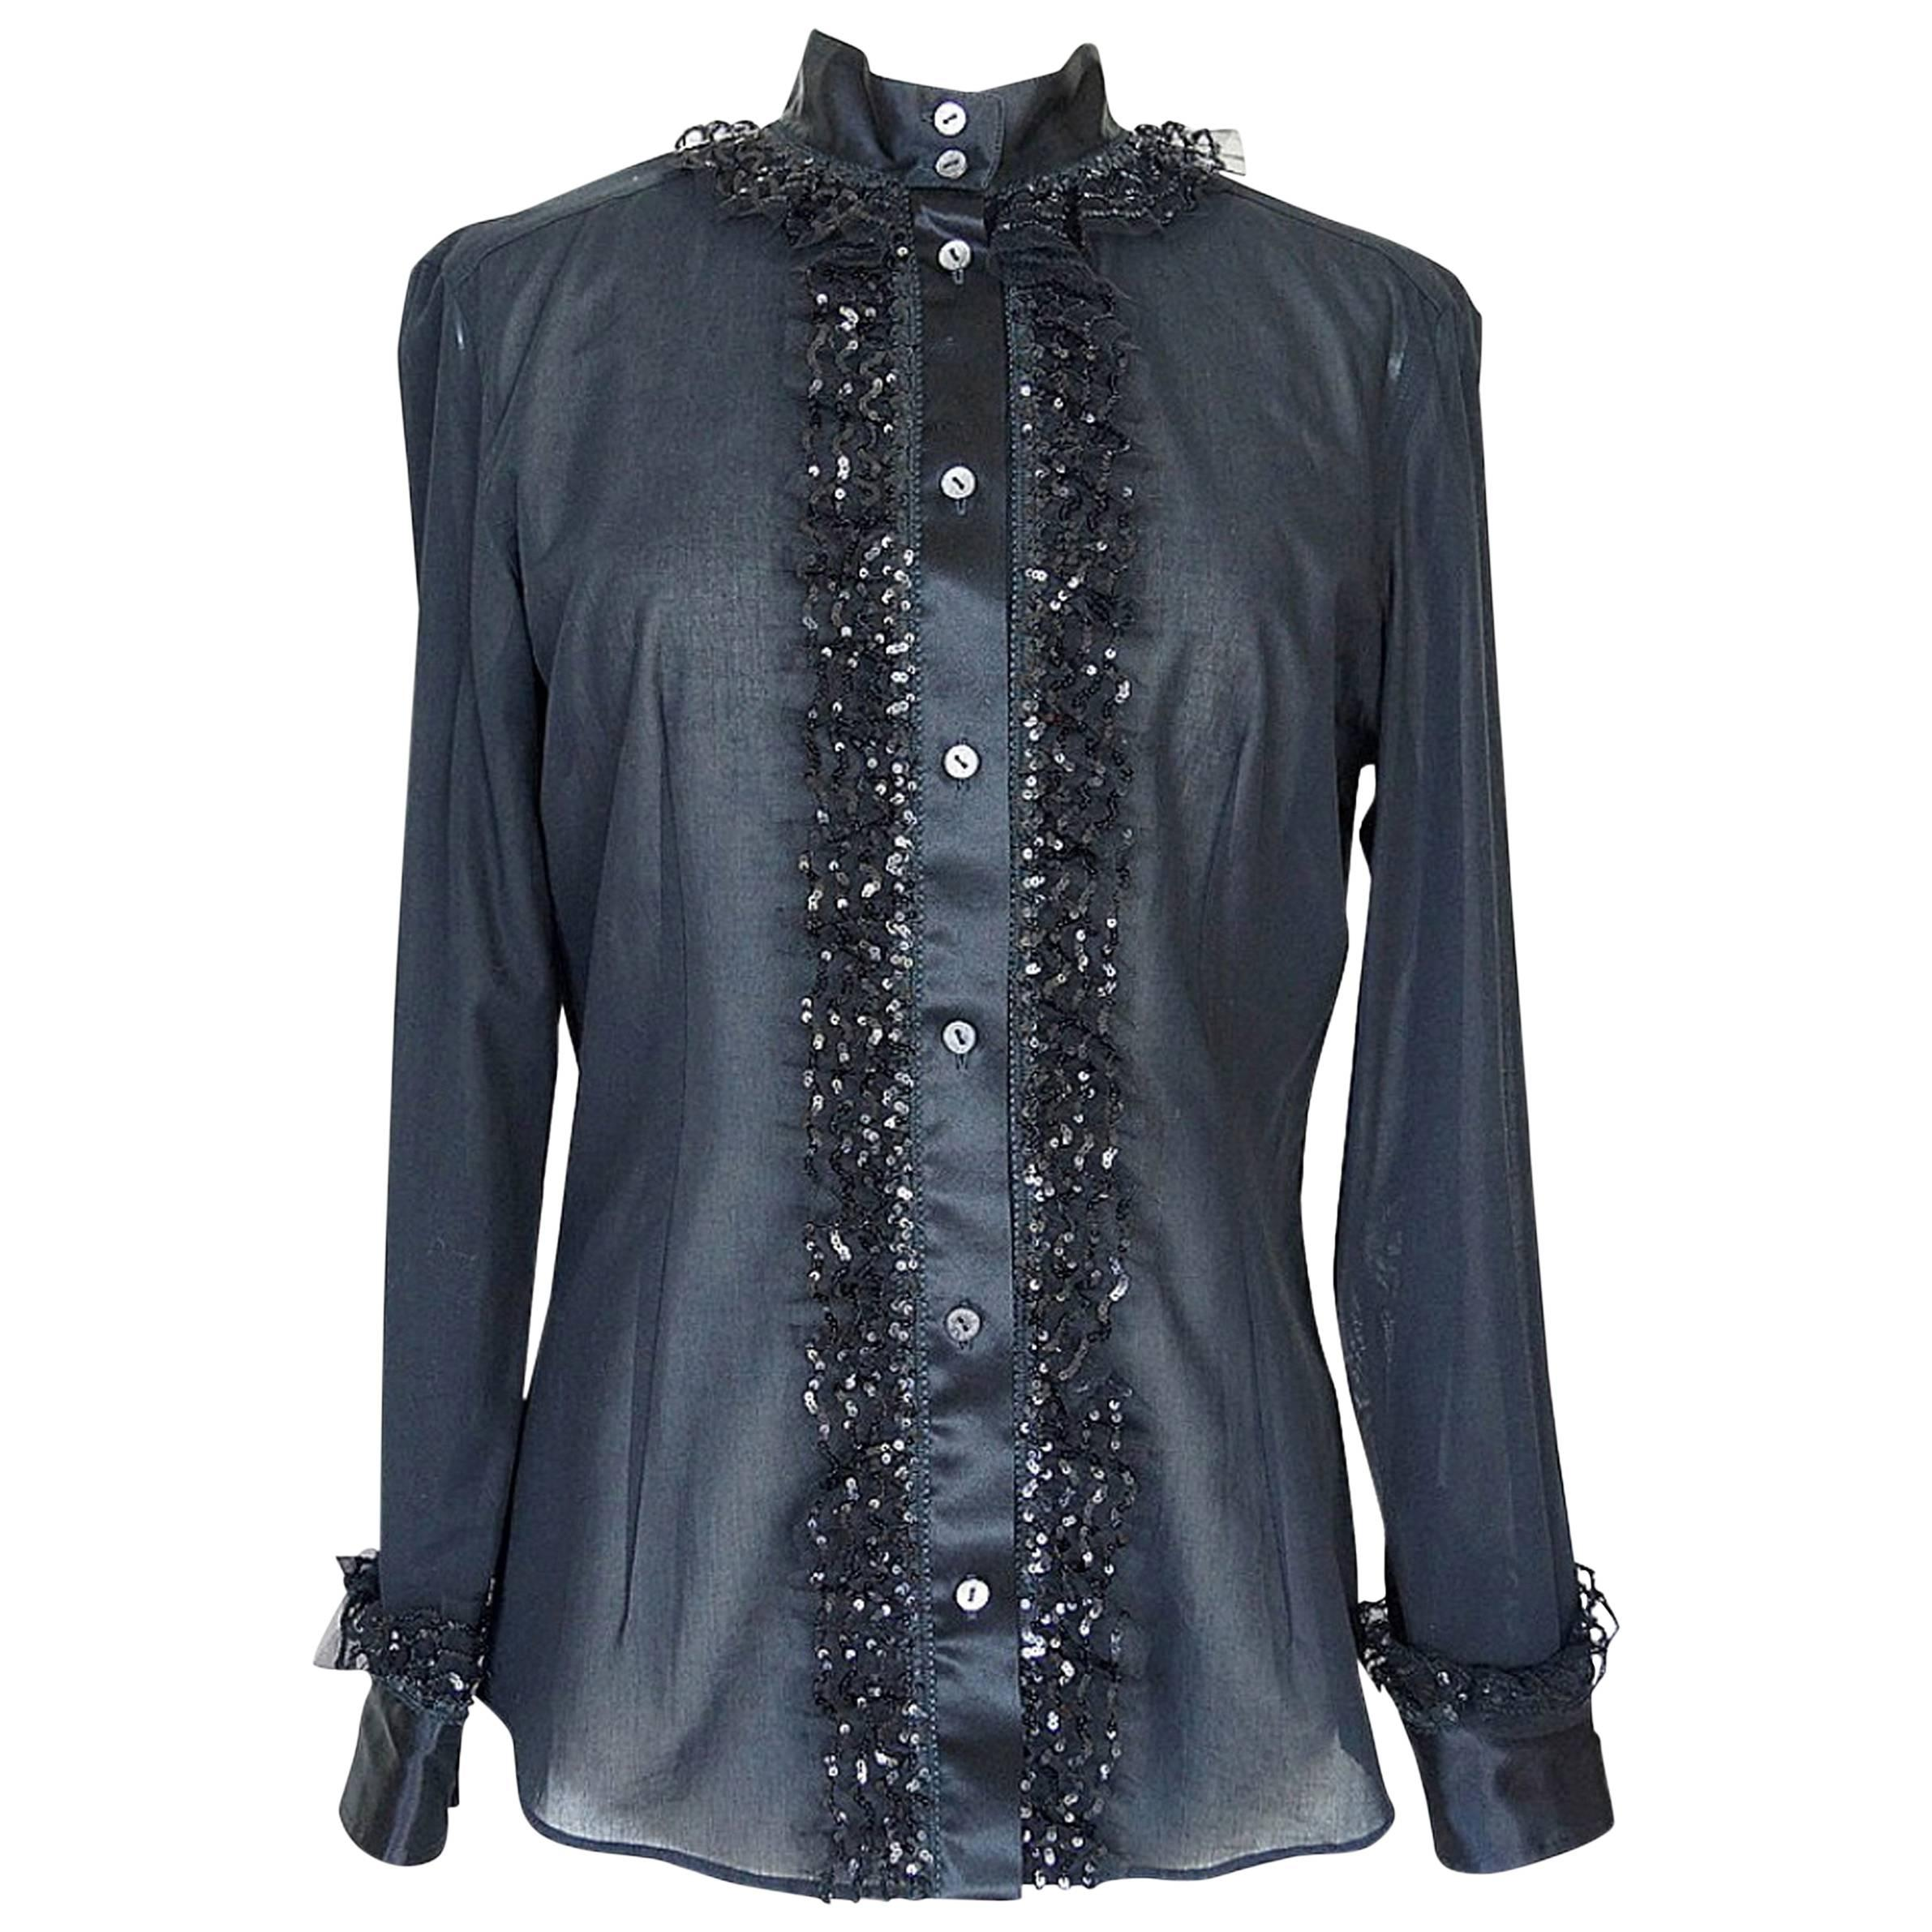 Dolce&Gabbana Top Black Silk Paillette and Tulle Trim 46 / 8